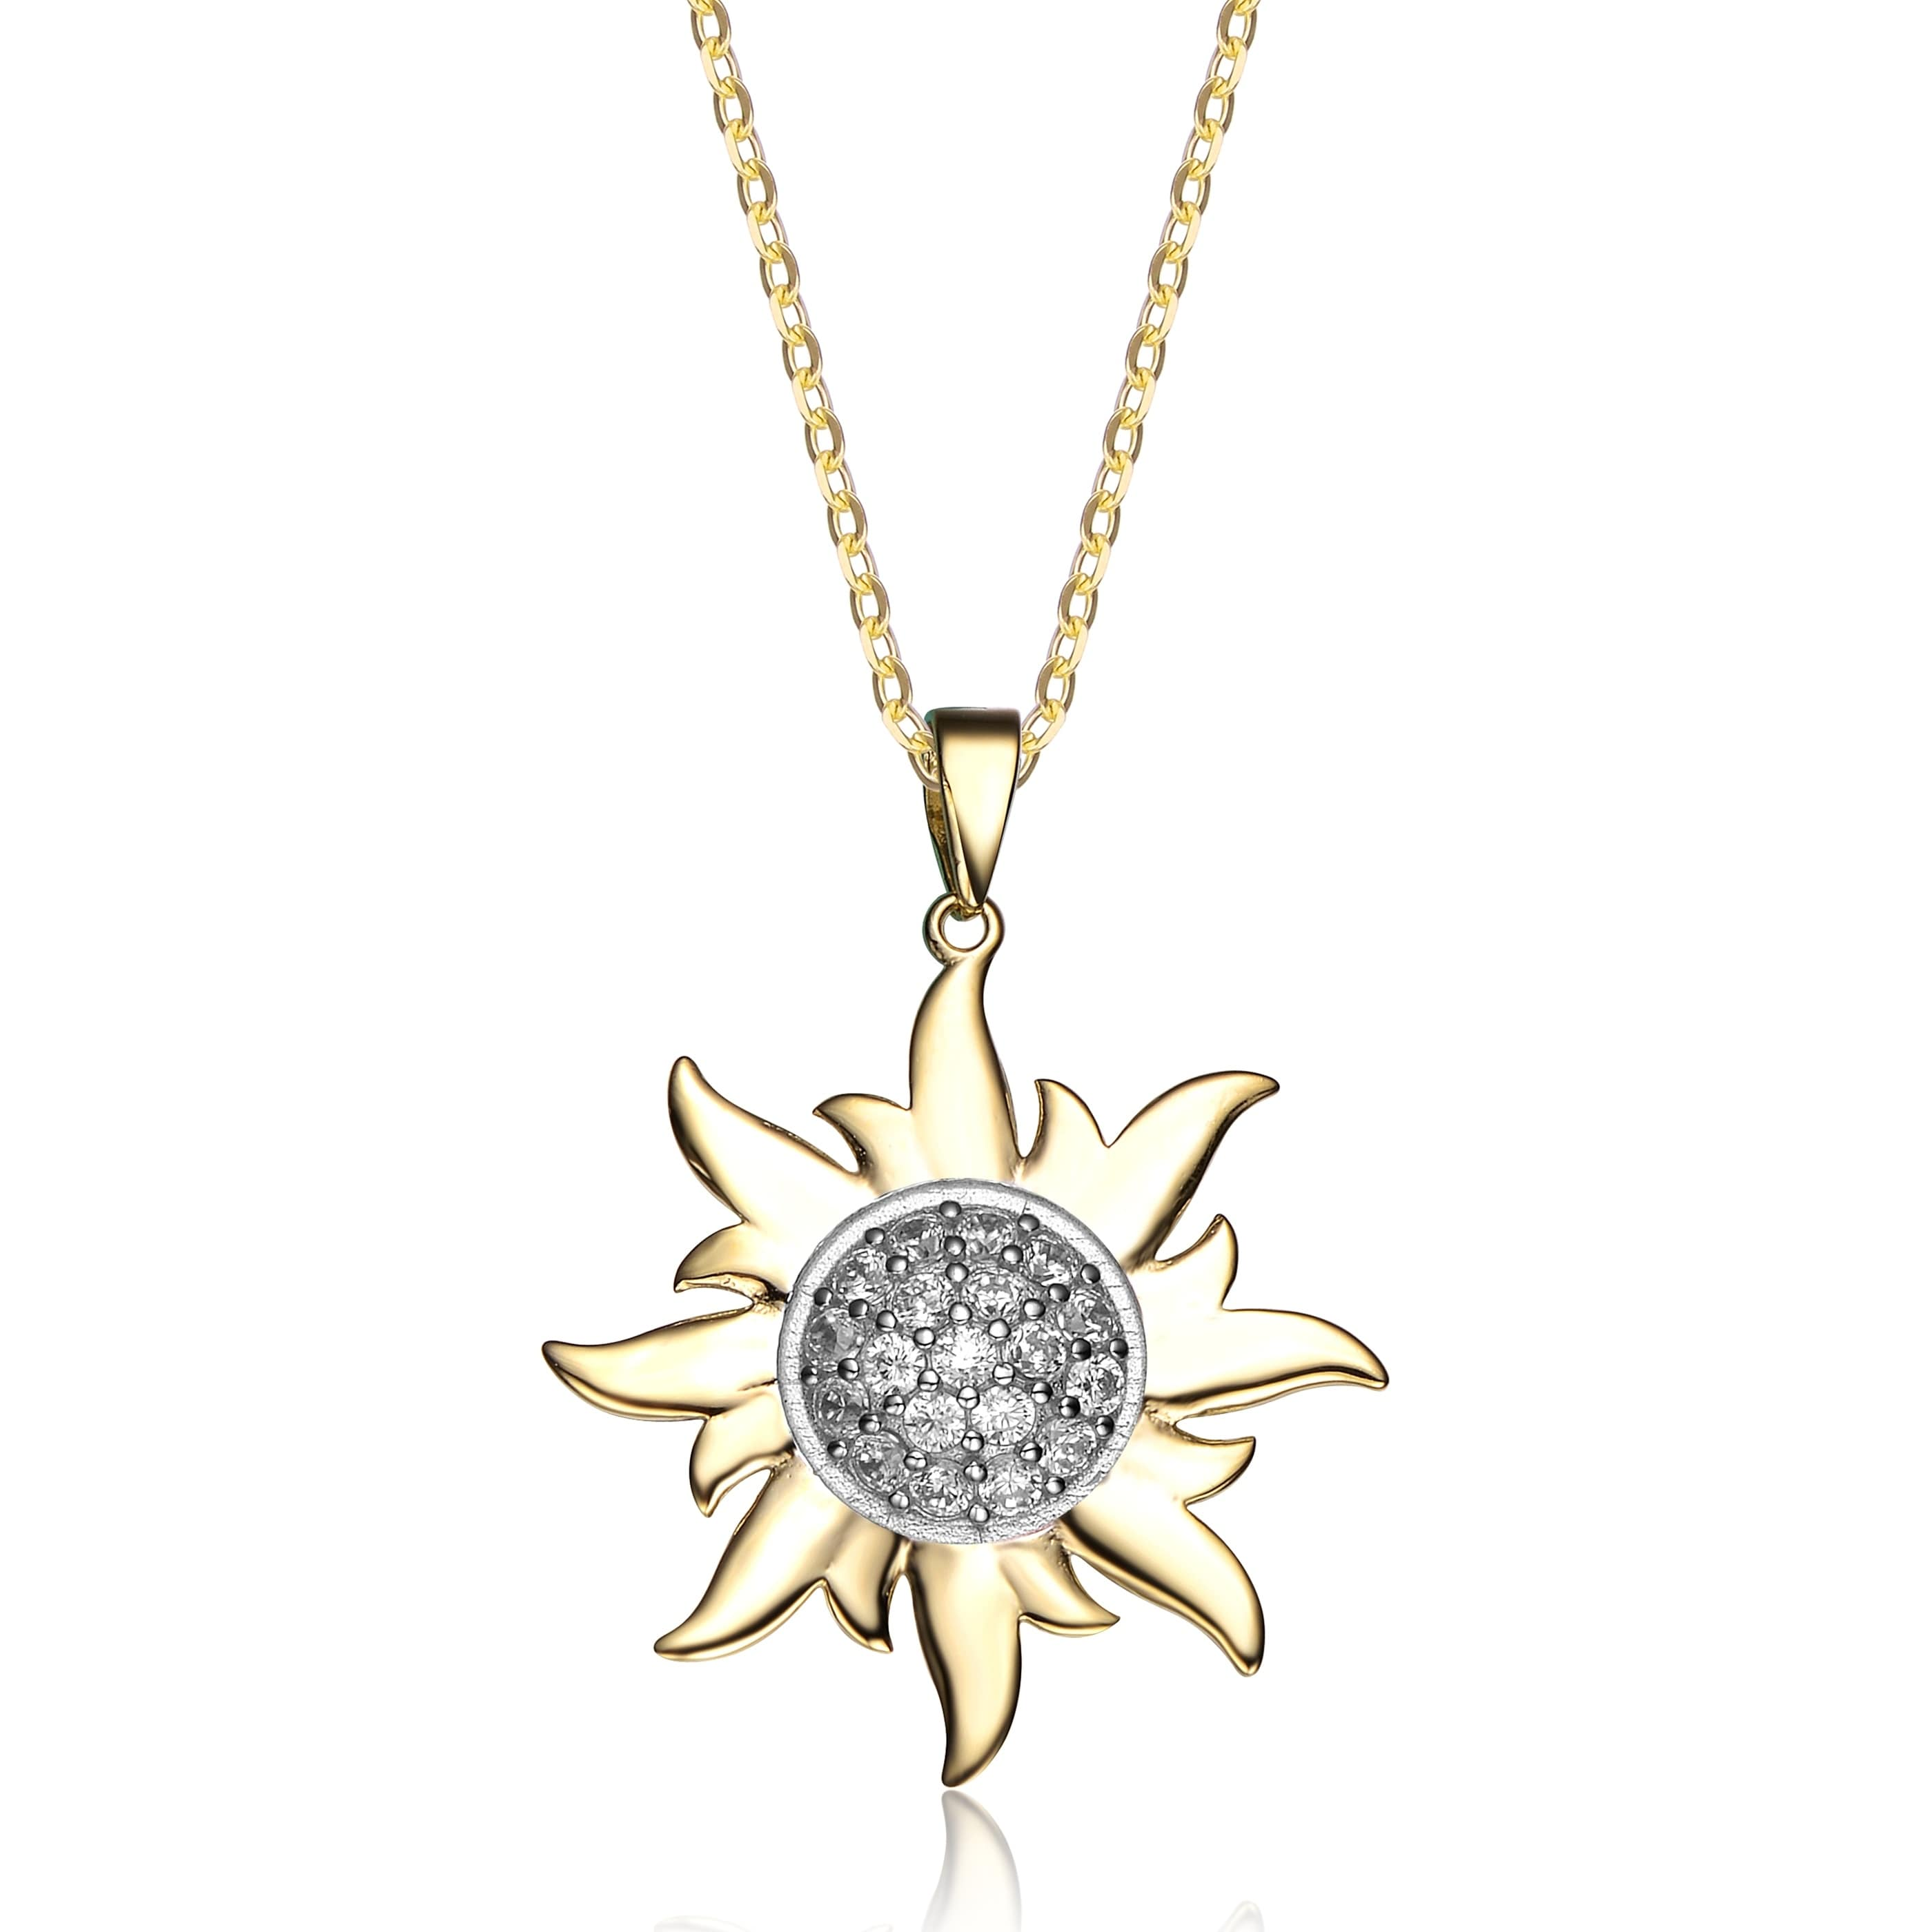 chopard diamond enlarged necklaces white products necklace pendant happy gold sun jewelry fine diamonds